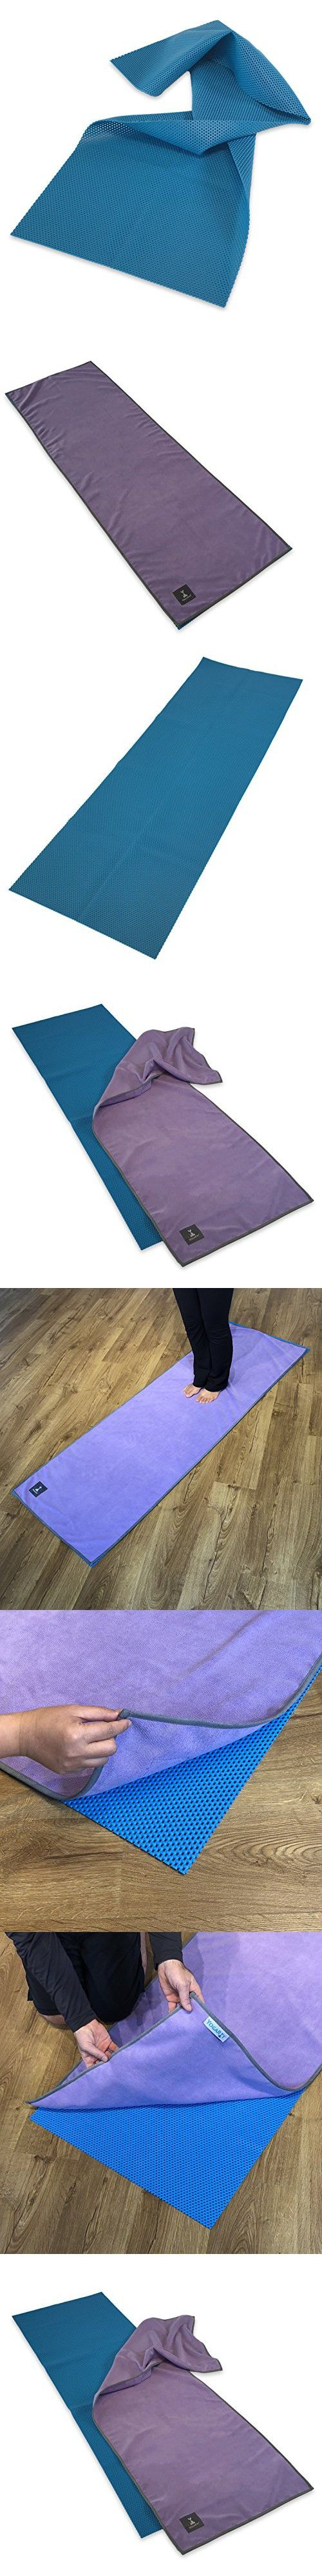 """Waffle Yoga Mat & Cush Yoga TowelSet - Foldable Yoga MatComes WithSuper Thick Yoga Mat Towel- For All Yoga Practices - Ideal for Hot Yoga -Great Travel Yoga Mat -24"""" x 72""""x 5mm"""